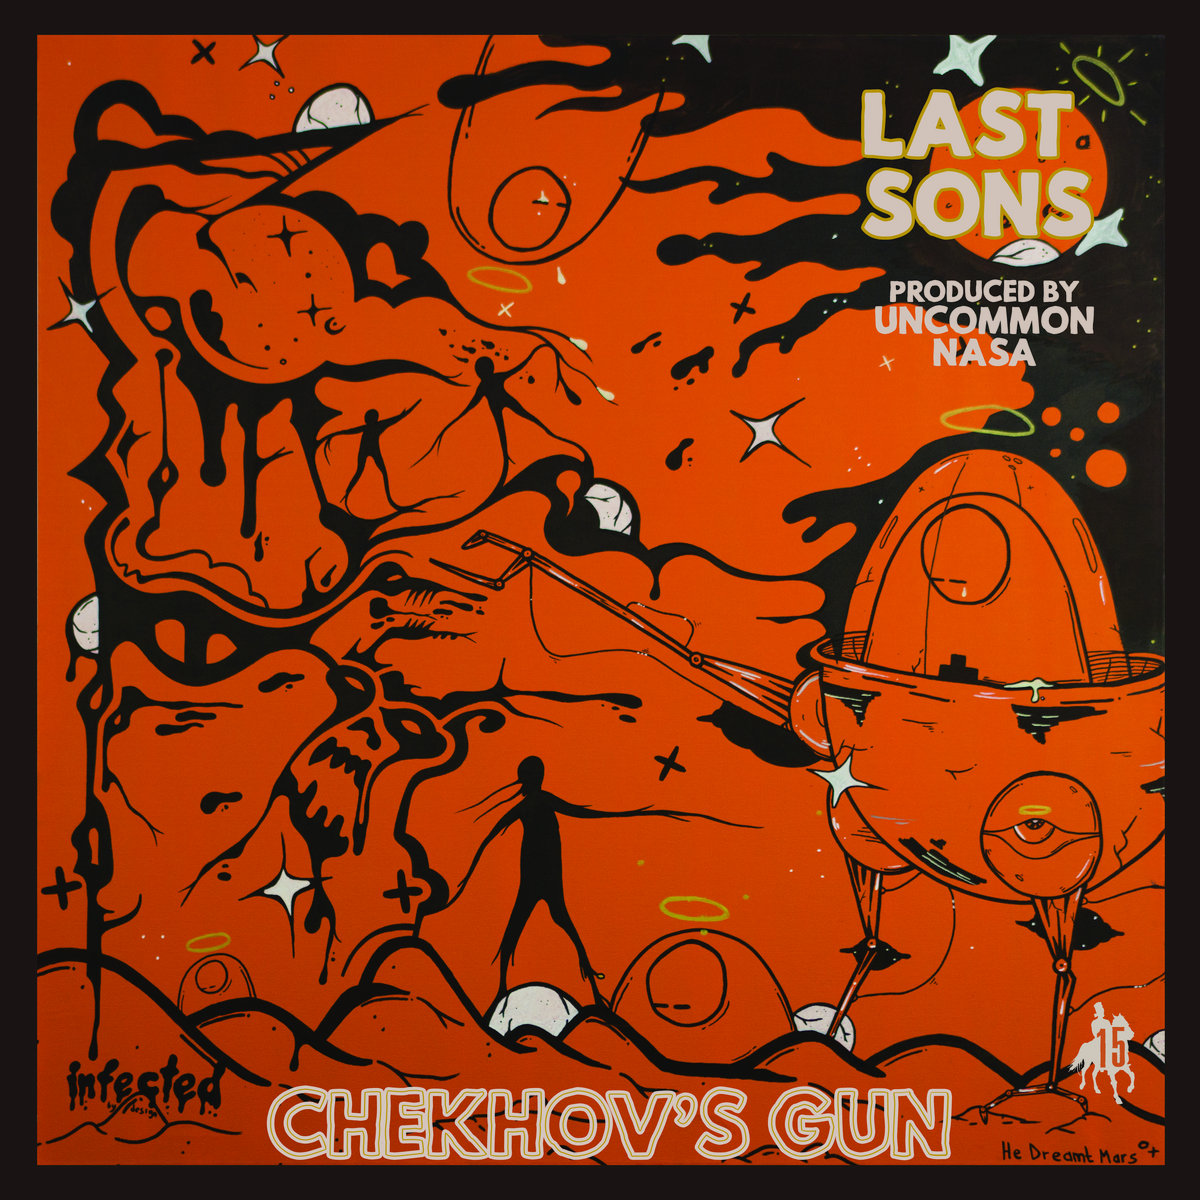 Chekhov's Gun | Uncommon Records